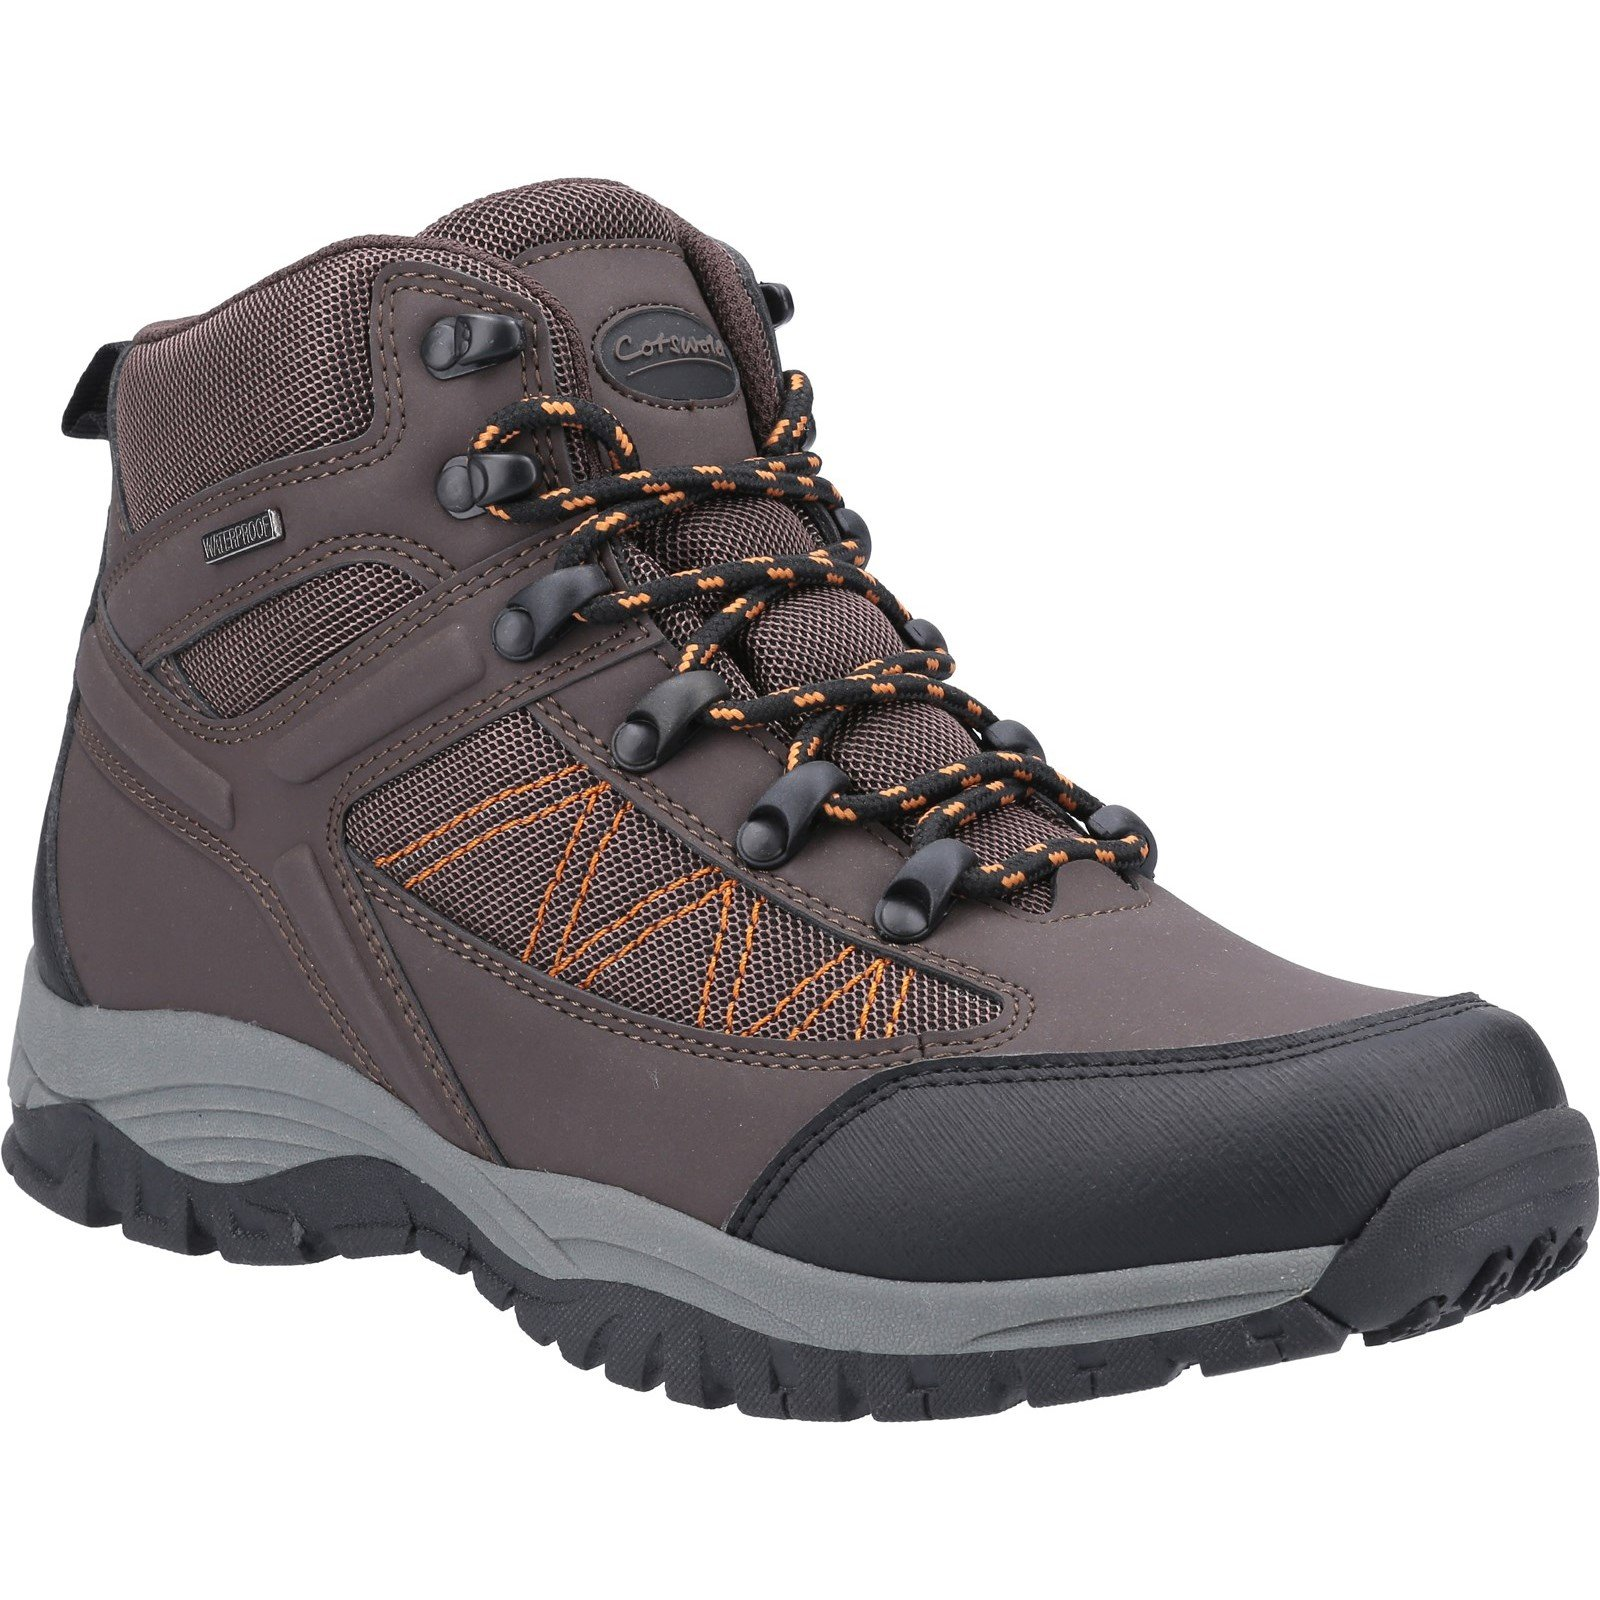 Cotswold Men's Maisemore Hiking Boot Brown 32985 - Brown 9